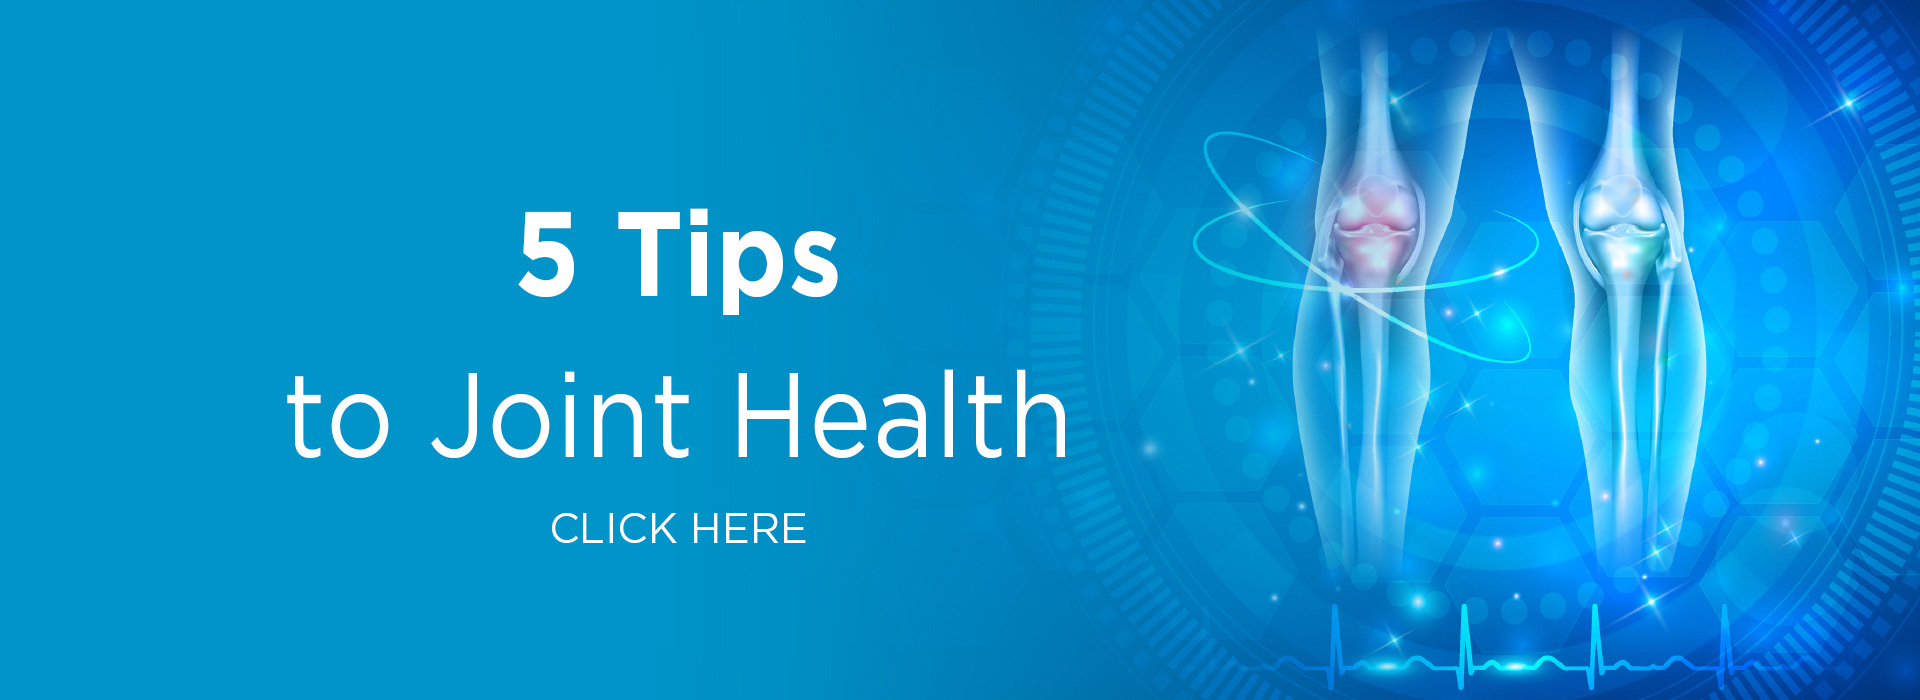 New Image International: 5 tips to Joint Health